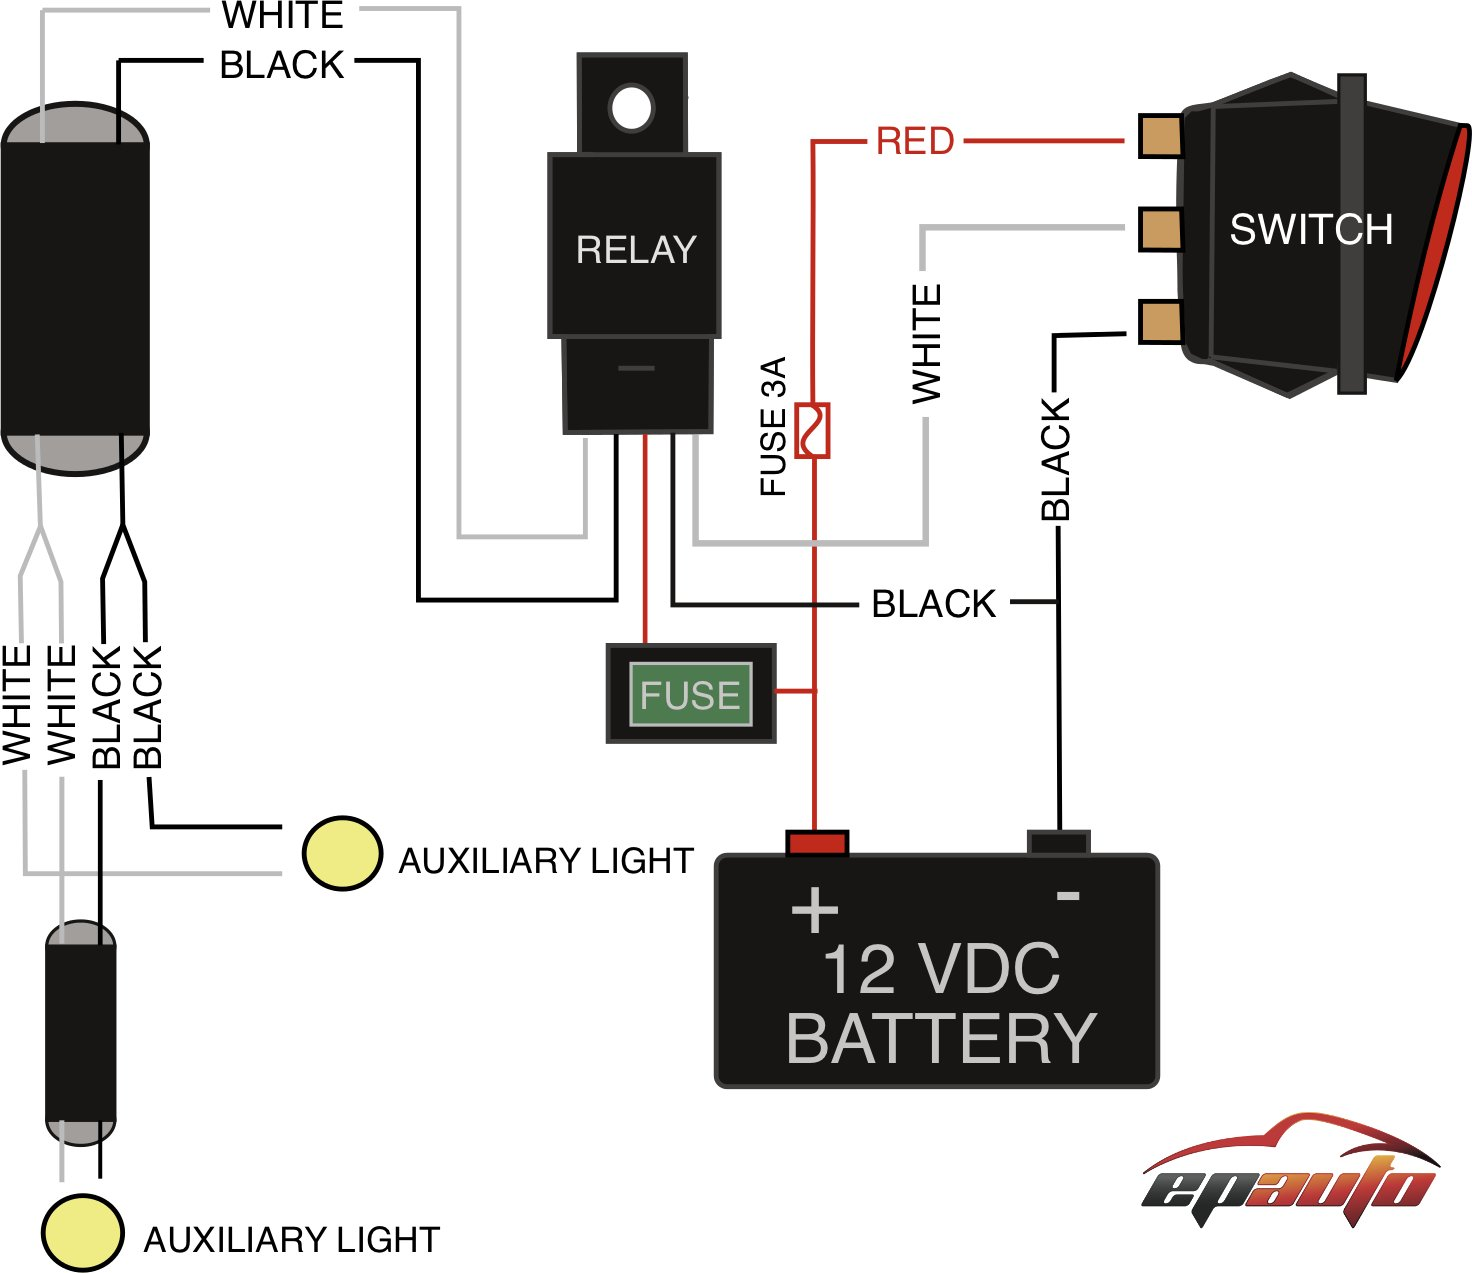 Light Bar Relay Wiring - 3.www.cryptopotato.co • on basic outlet wiring, basic relay wiring diagram, spst switch diagrams, basic switch wiring diagram, basic street rod wiring diagram, basic motorcycle wiring diagram, electrical diagrams, ladder logic circuit diagrams, basic hvac ladder diagrams, basic plug wiring, basic oven wiring diagram, basic shed wiring, basic phone wiring diagram, basic light installation, basic wiring 101, basic starter wiring diagram, basic turn signal wiring diagram, basic wiring schematics, basic house wiring, basic room wiring-diagram,